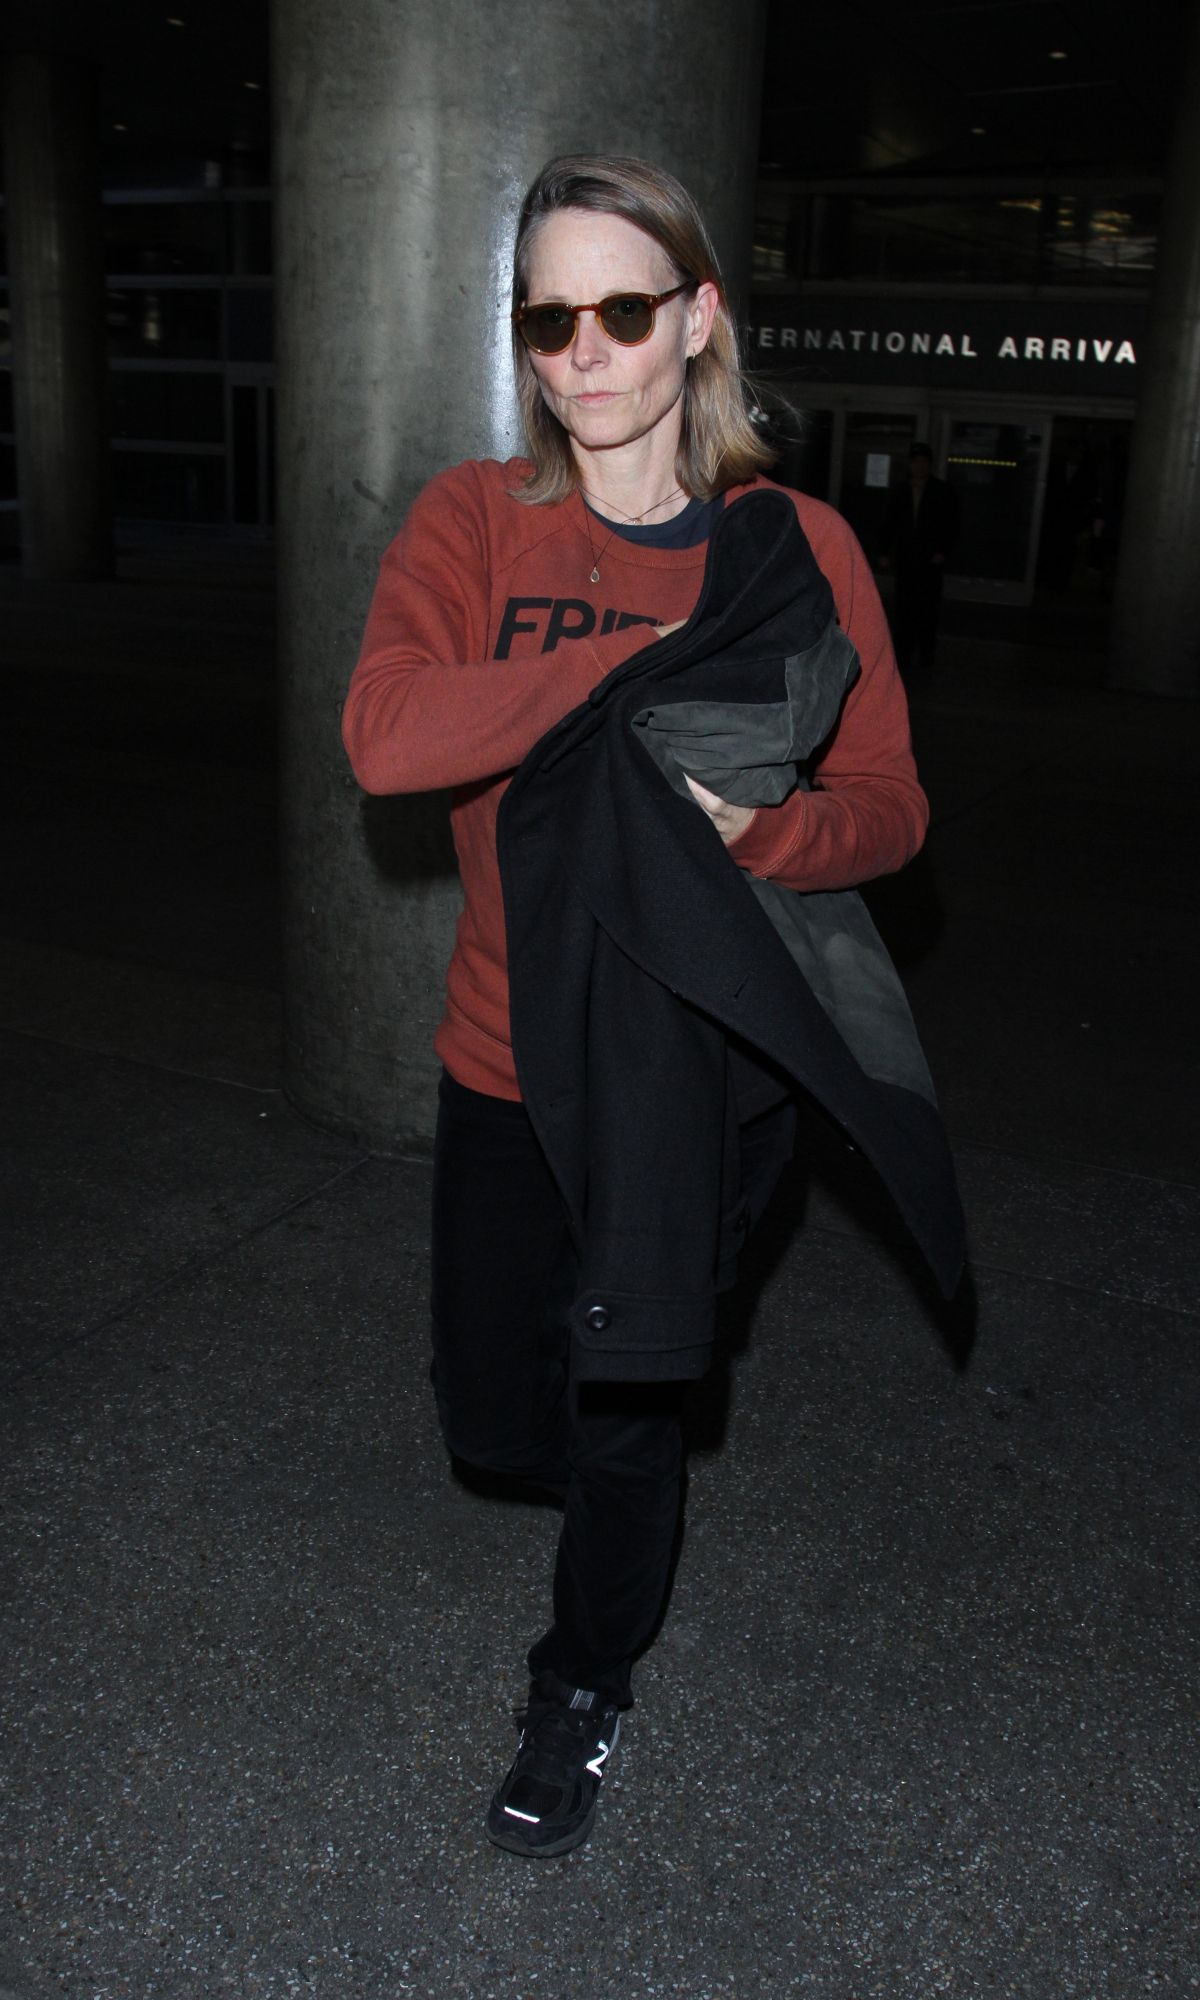 JODIE FOSTER at LAX Airport in Los Angeles 12/16/2016